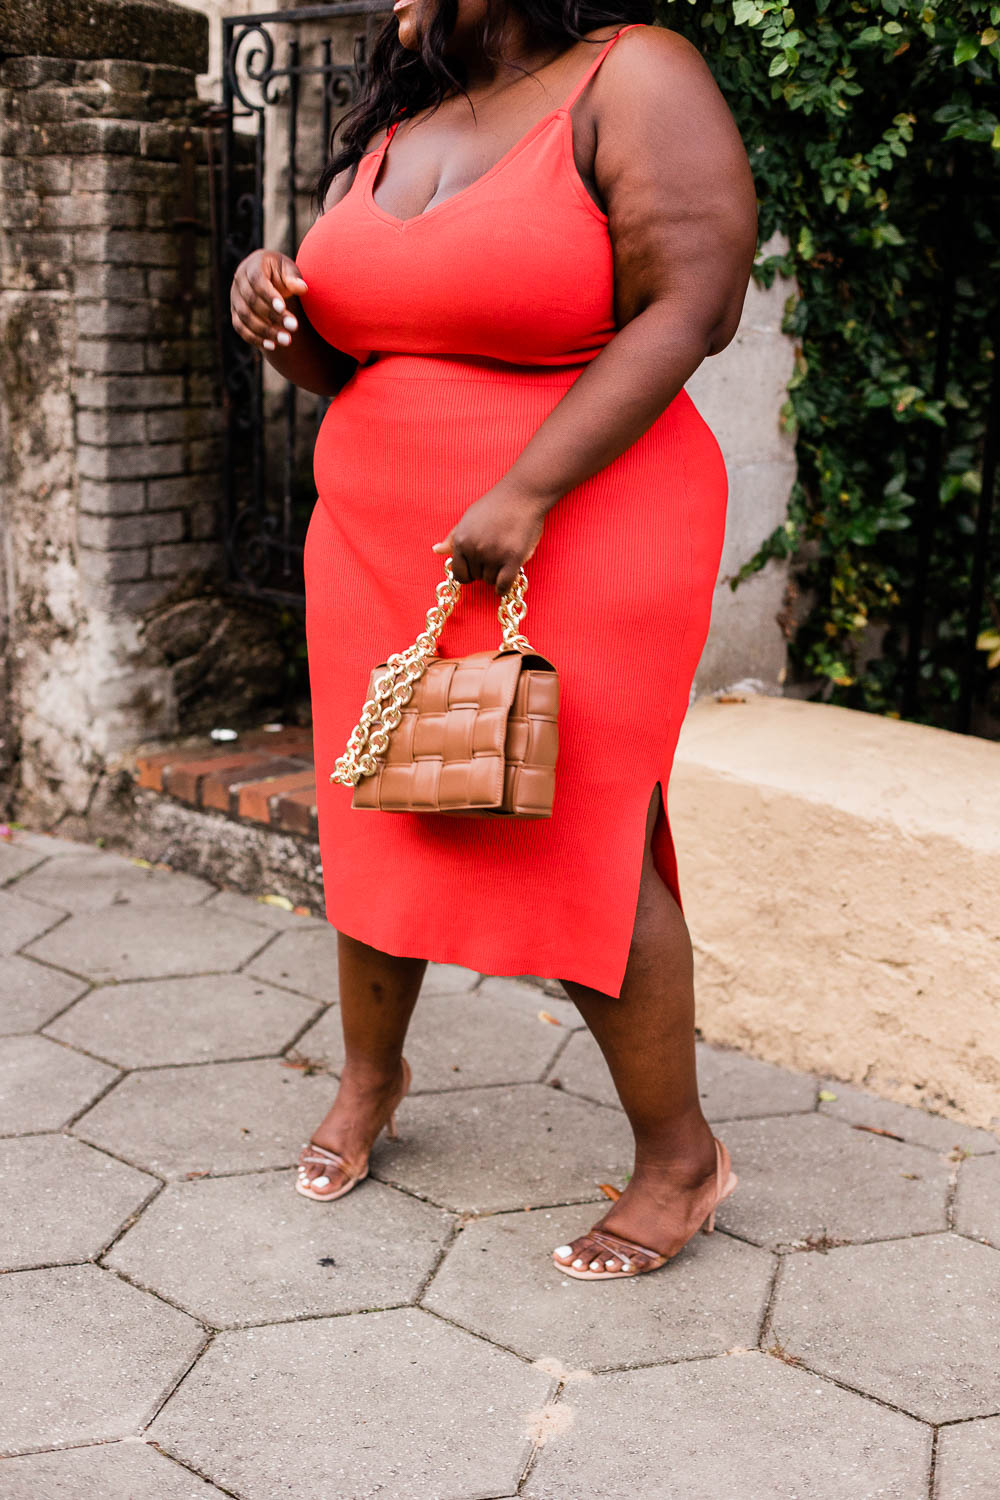 Amazon The Drop, Plus Size Fashion, Amazon The Drop Plus Size Skirt, Amazon the Drop Plus Size Cami, Plus Size Two Piece Set, Black Plus Size Model in Red Dress, Red Two Piece Outfit, Red Outfit Ideas, Bottega Veneta Dupe, Steve Madden Loft Sandals, Summer Fashion Ideas, Plus Size Summer Fashion Outfit Ideas